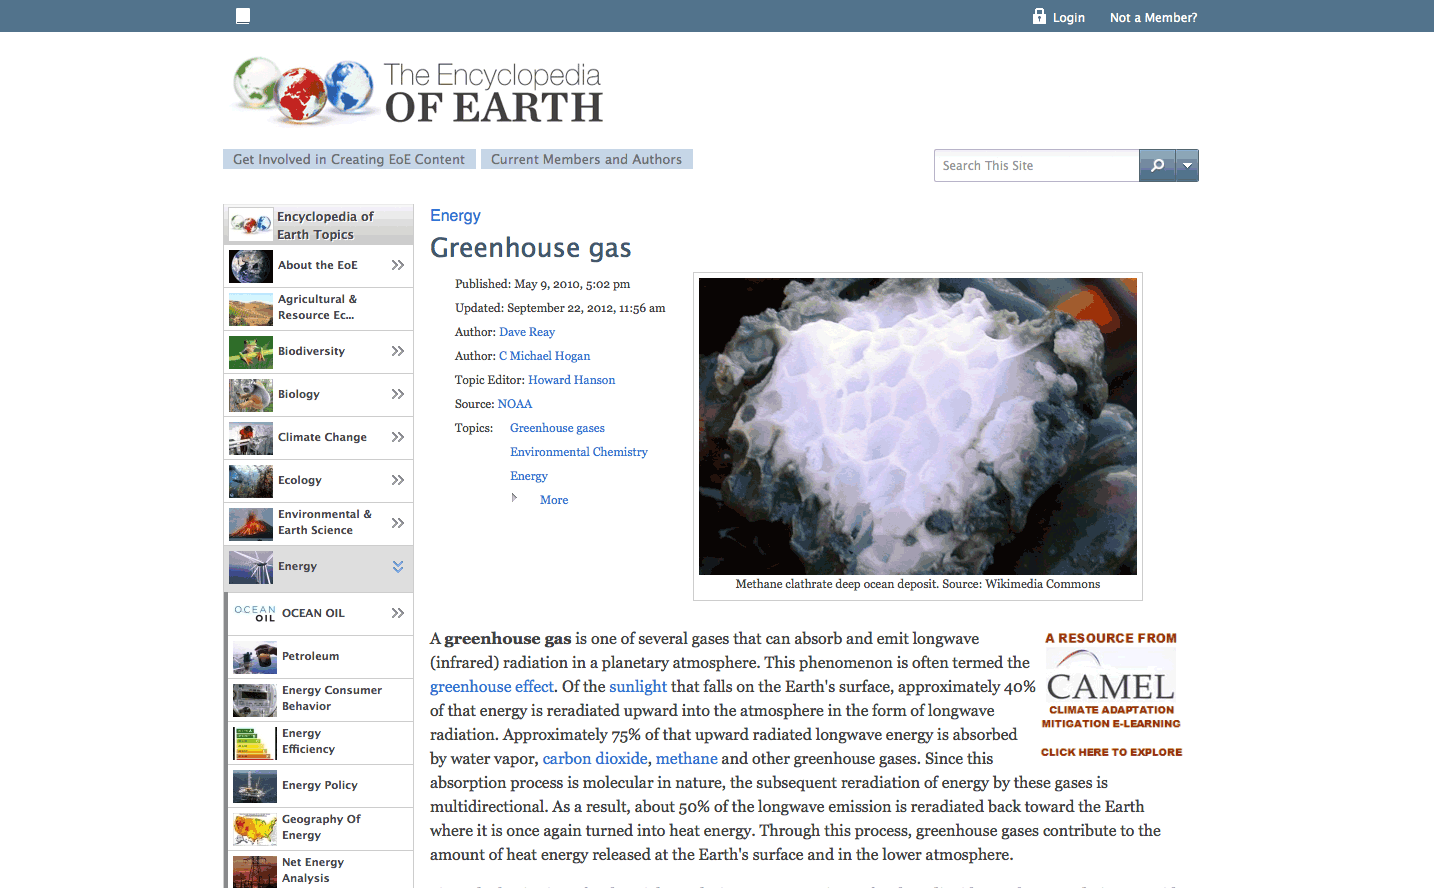 The Encyclopedia of Earth is an excellent online reference for the environmental sciences.